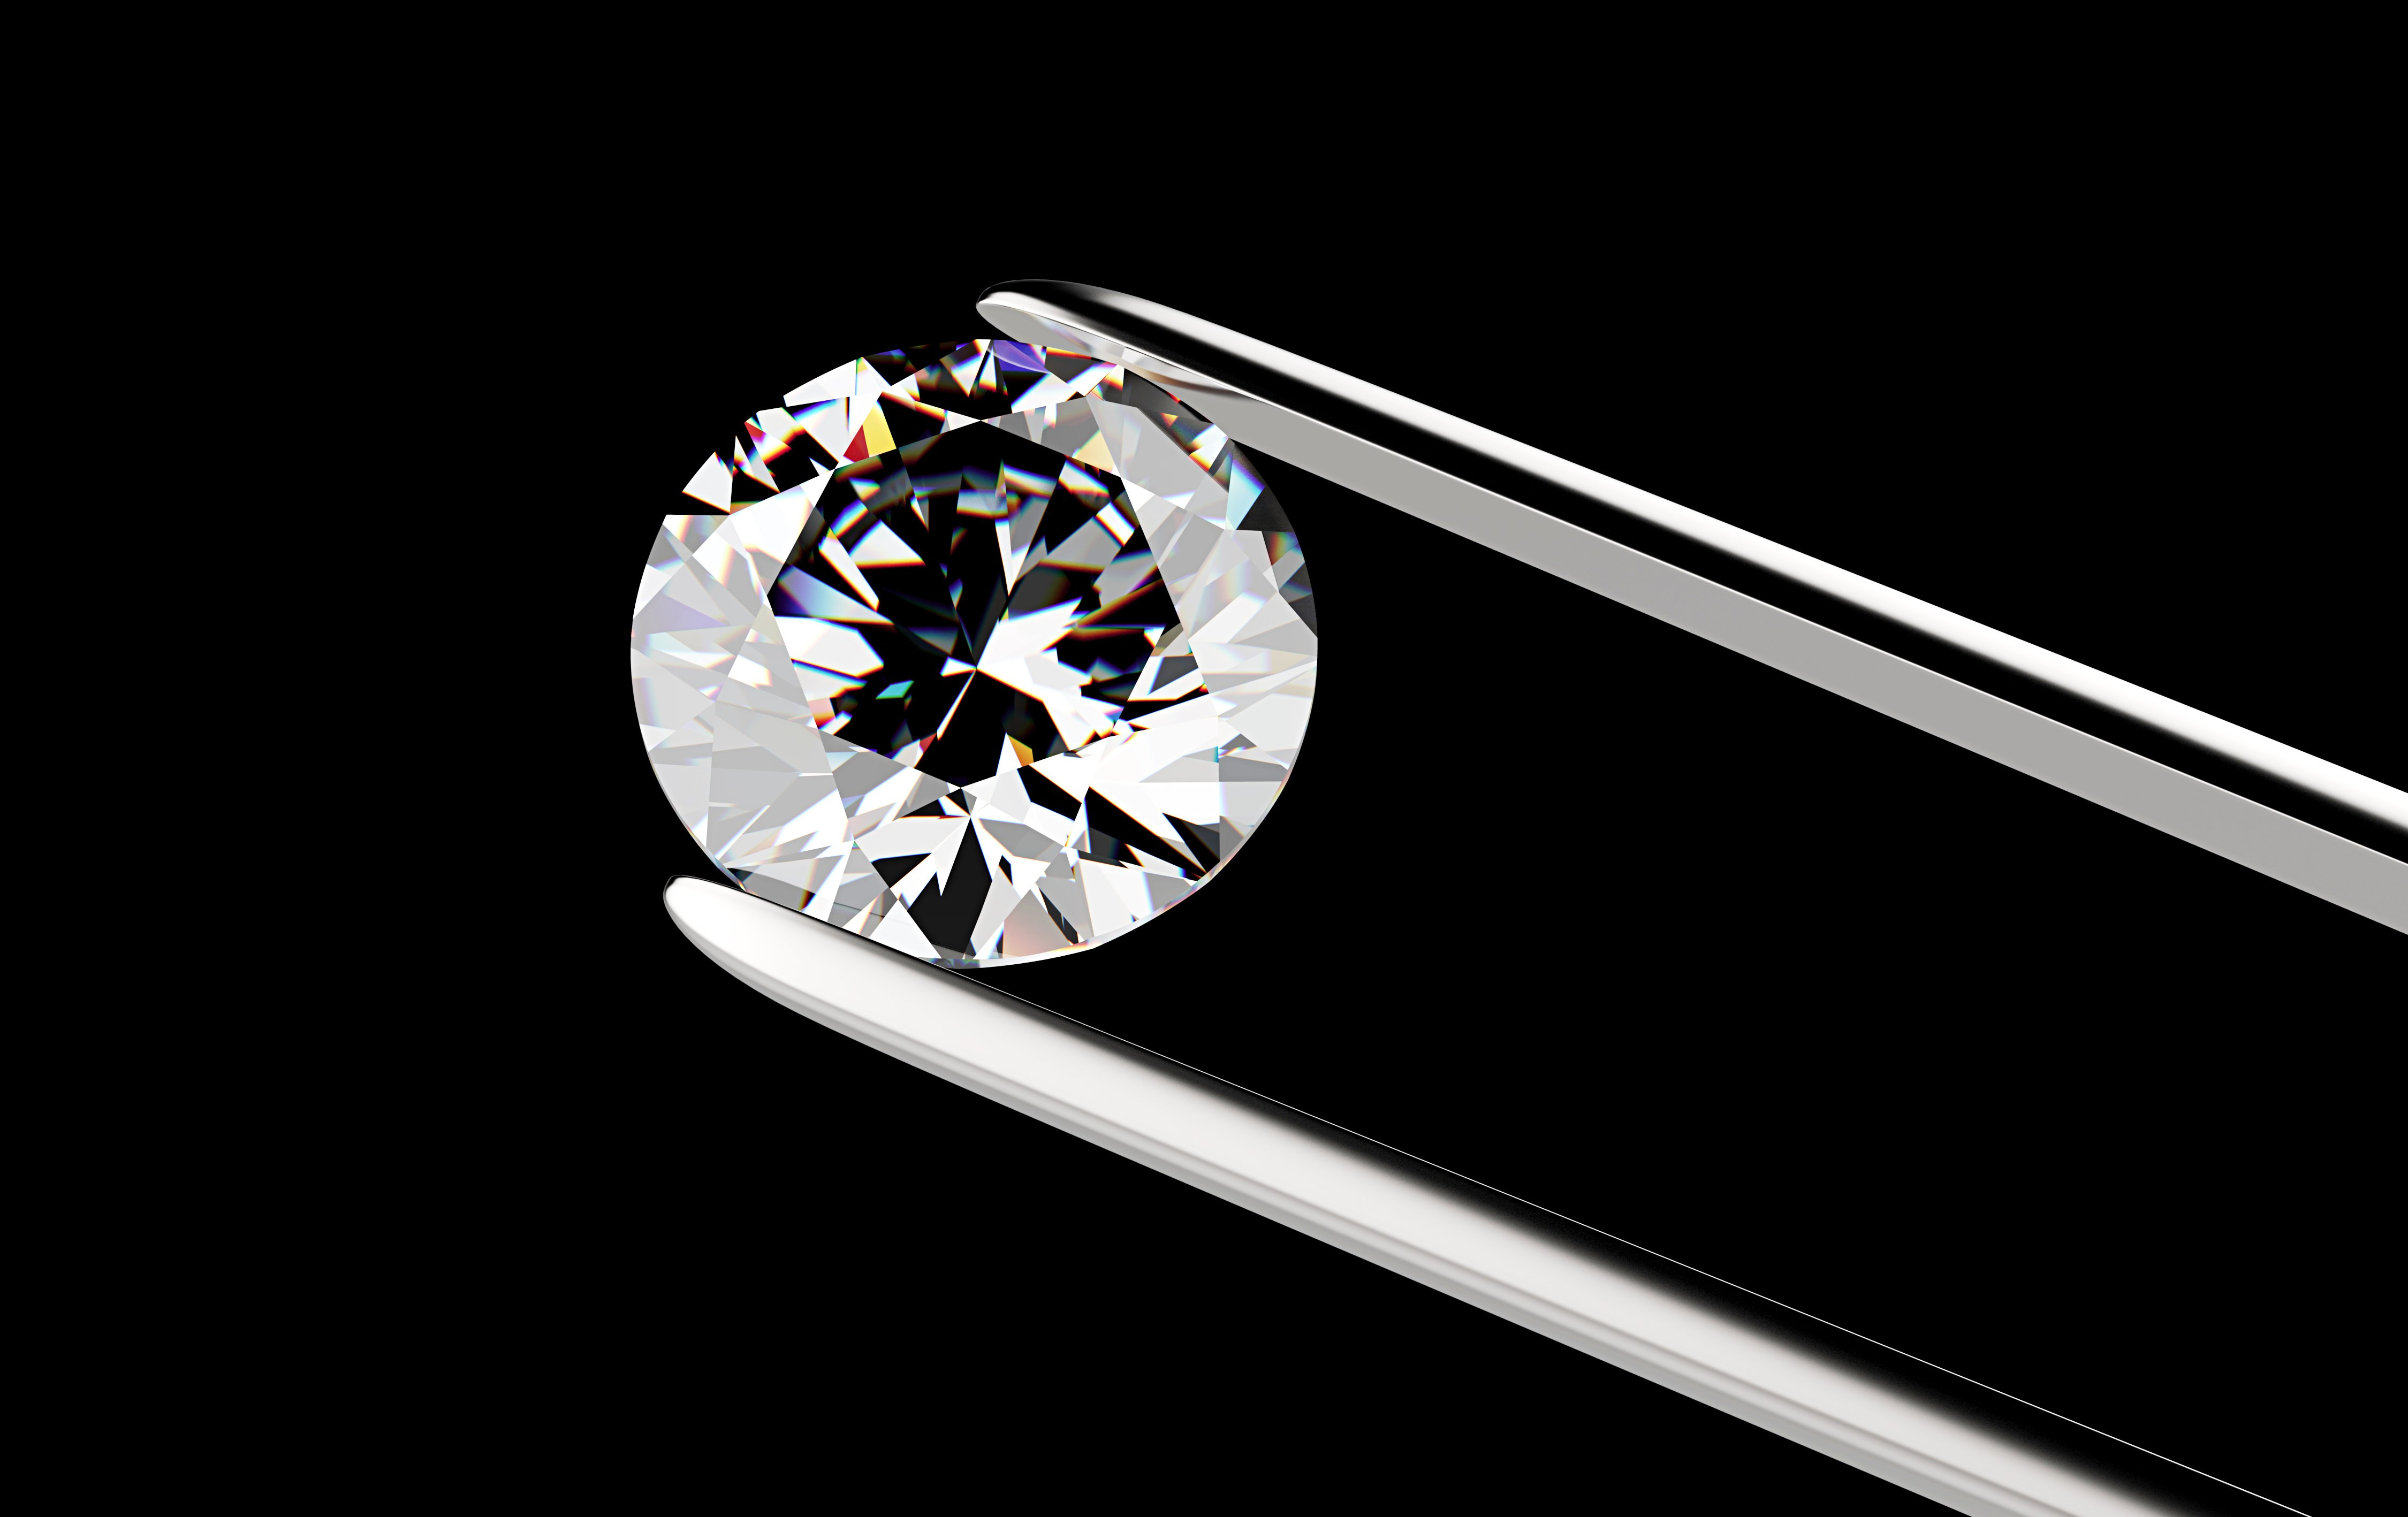 Why Choose a Round Brilliant Cut Diamond?